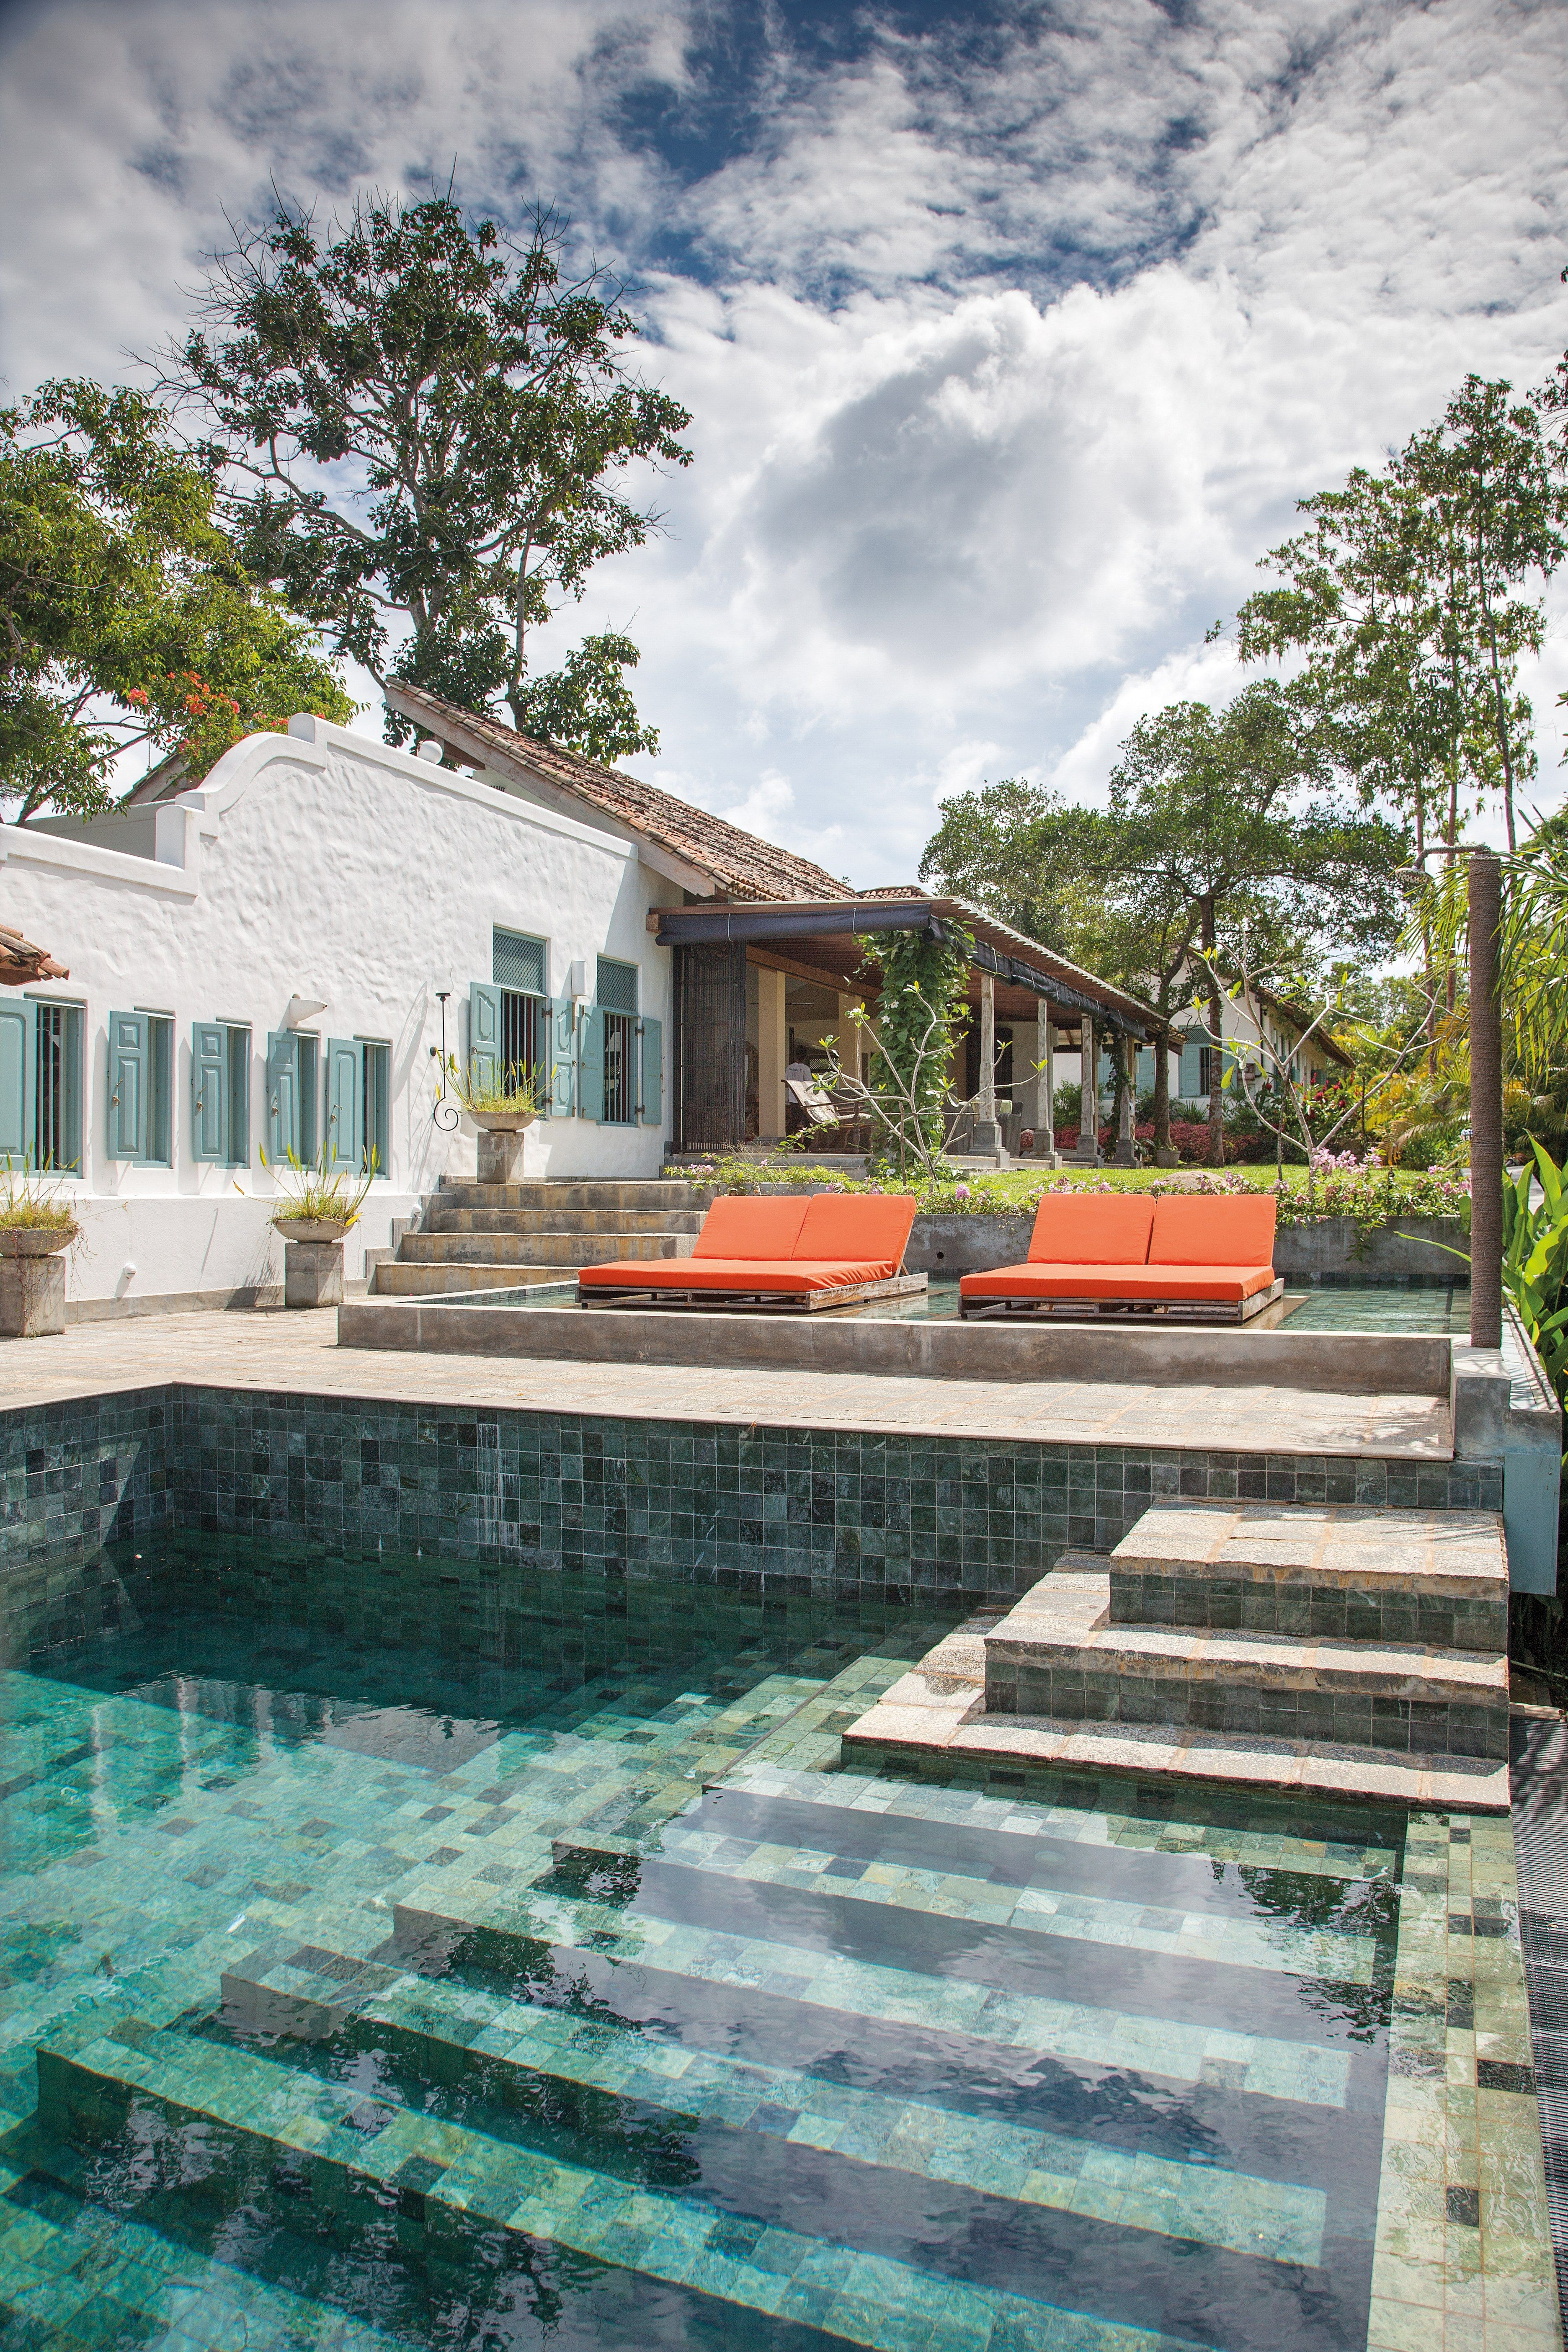 Sri Lankan Homes That Will Inspire Your Vacation House Decor With Images Vacation House Decor